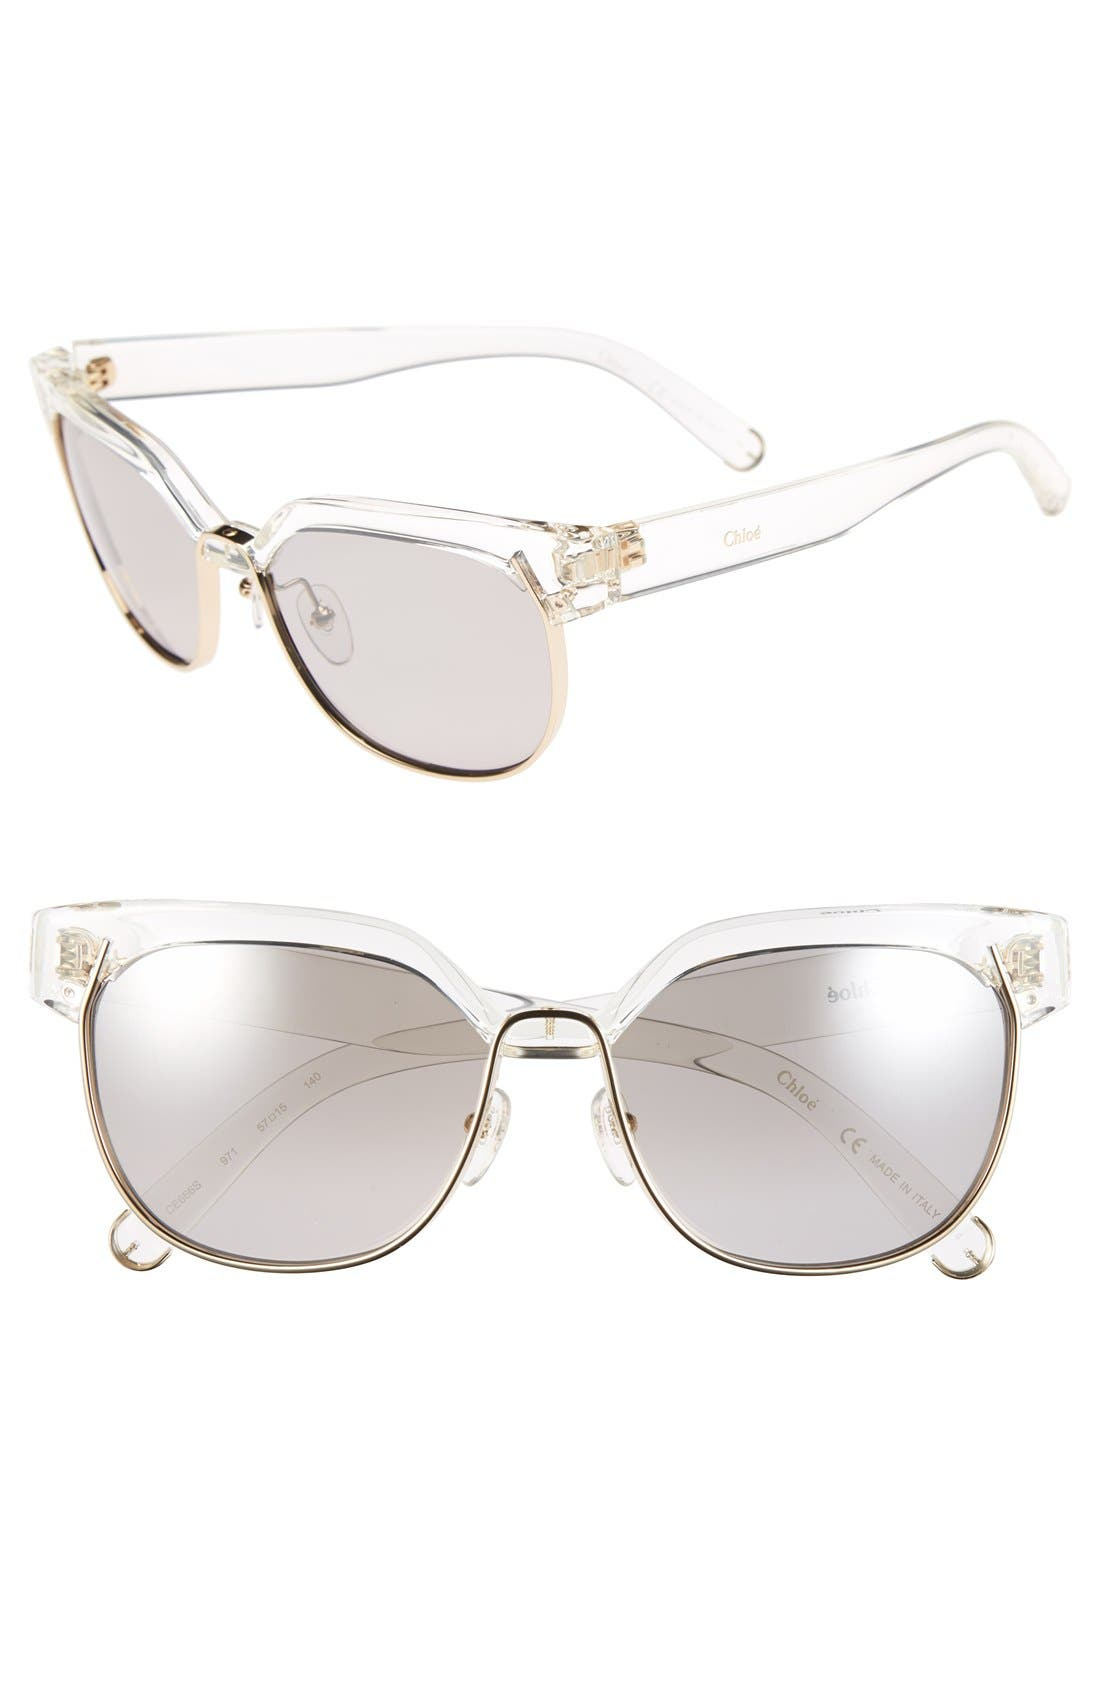 CHLOÉ 'Dafne' 57mm Gradient Sunglasses